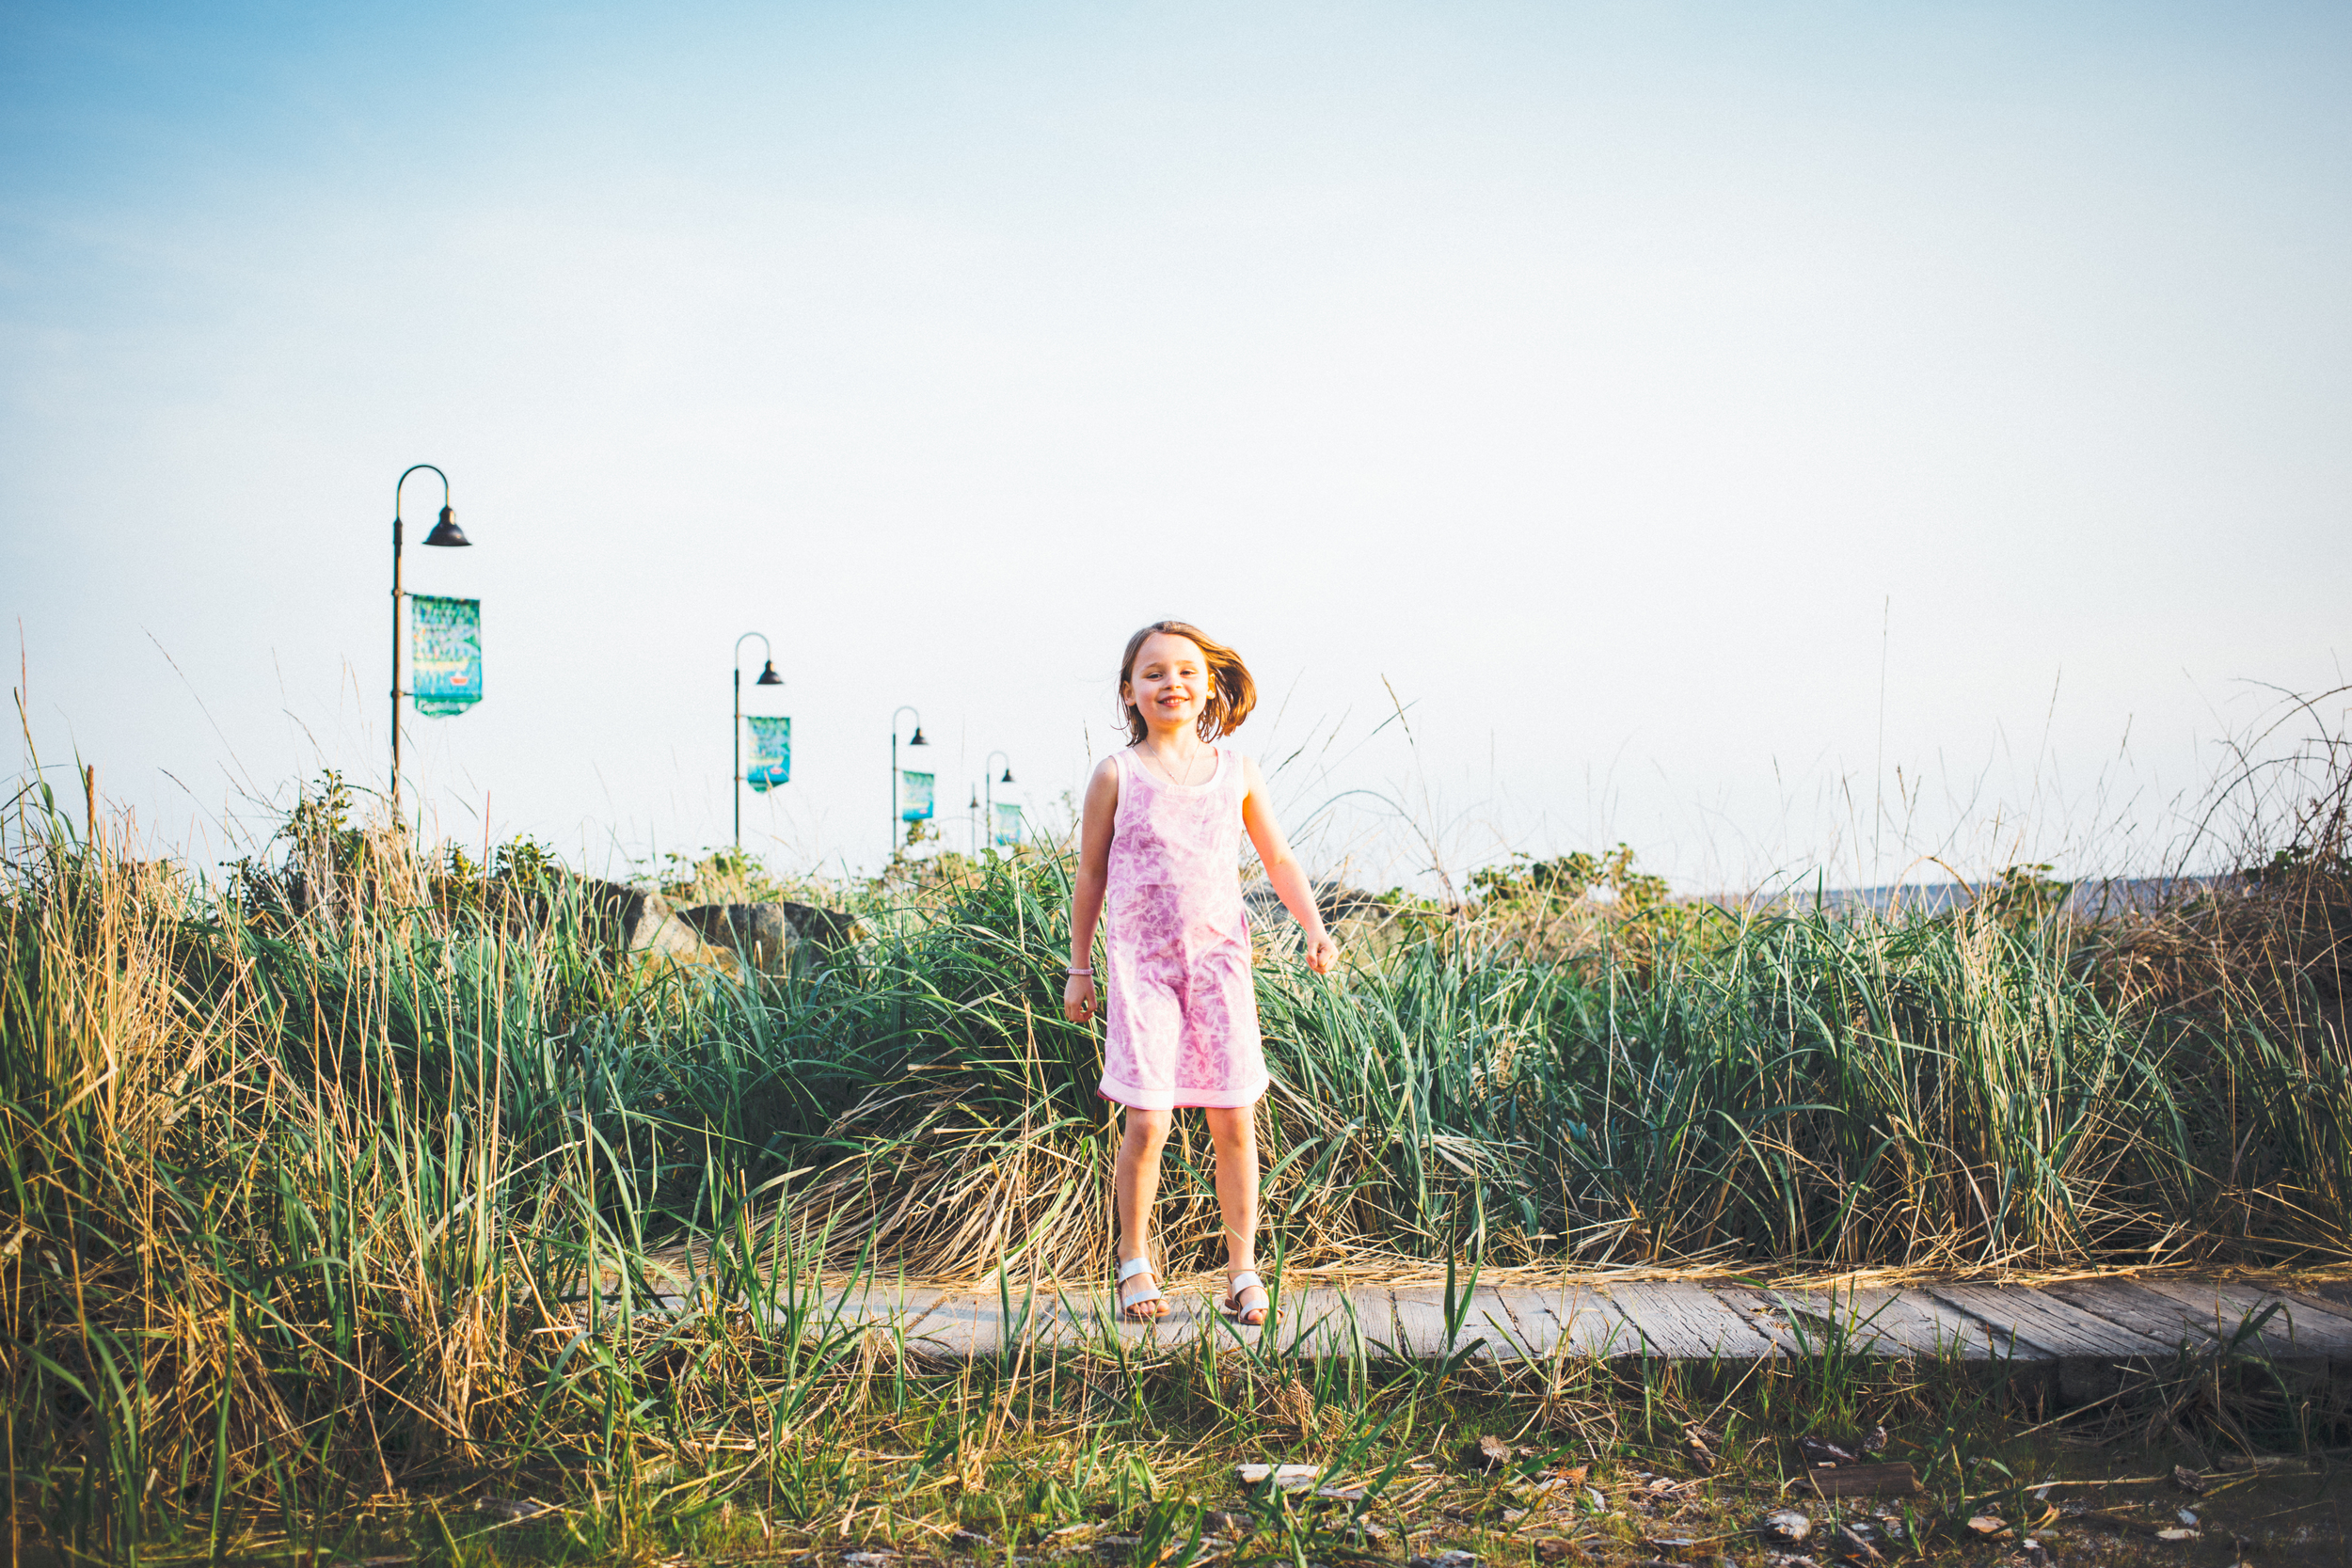 vancouver_photographer_child_family_DogwoodPhotography_laurenwatson-65.jpg